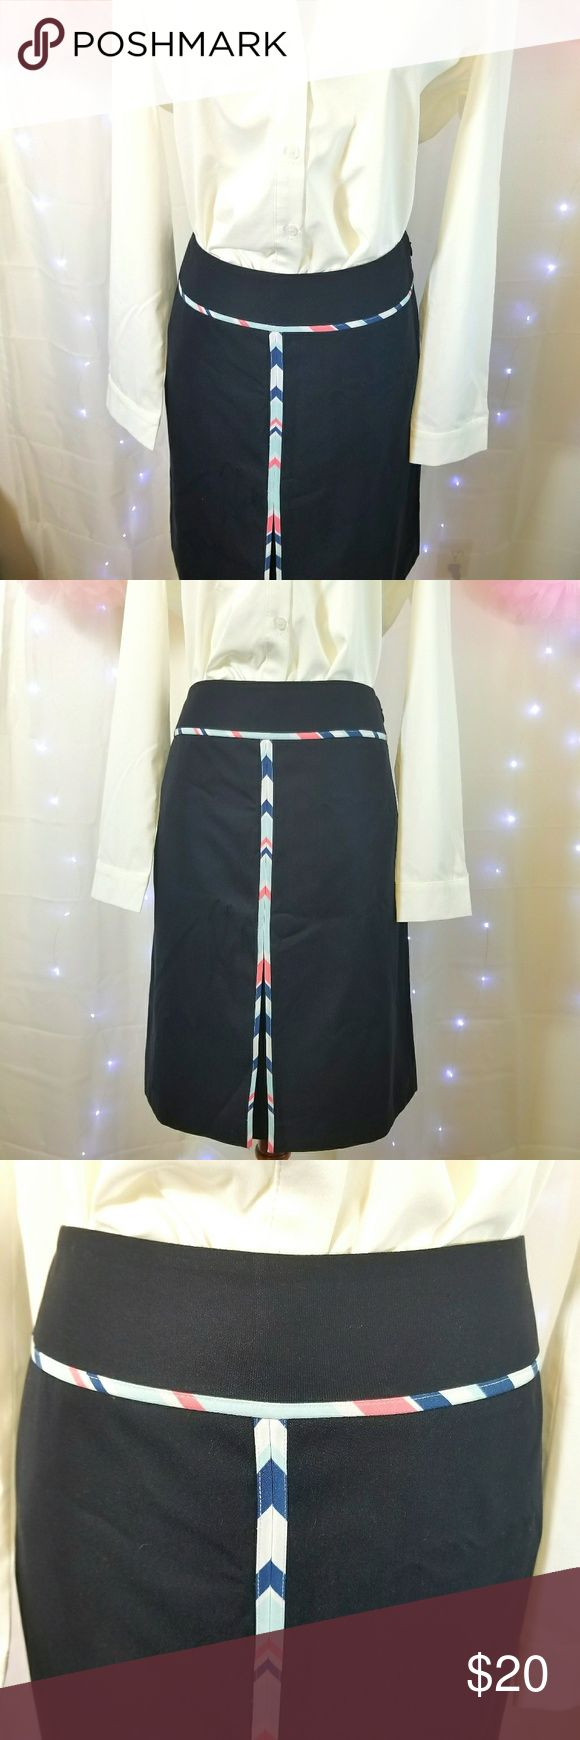 """Loft Strip Trim Skirt Loft Strip Trim Skirt  Blue Loft Skirt with a multi-colored striped ribbon accenting the waist and front of skirt. Size 8. Zips up from the left side. Measurements = 32"""" (Waist), 40"""" (Hips) & 21.5"""" (Total Length). Please let me know if you have any questions.   Size 8. Women's Skirt. LOFT Skirts Midi"""